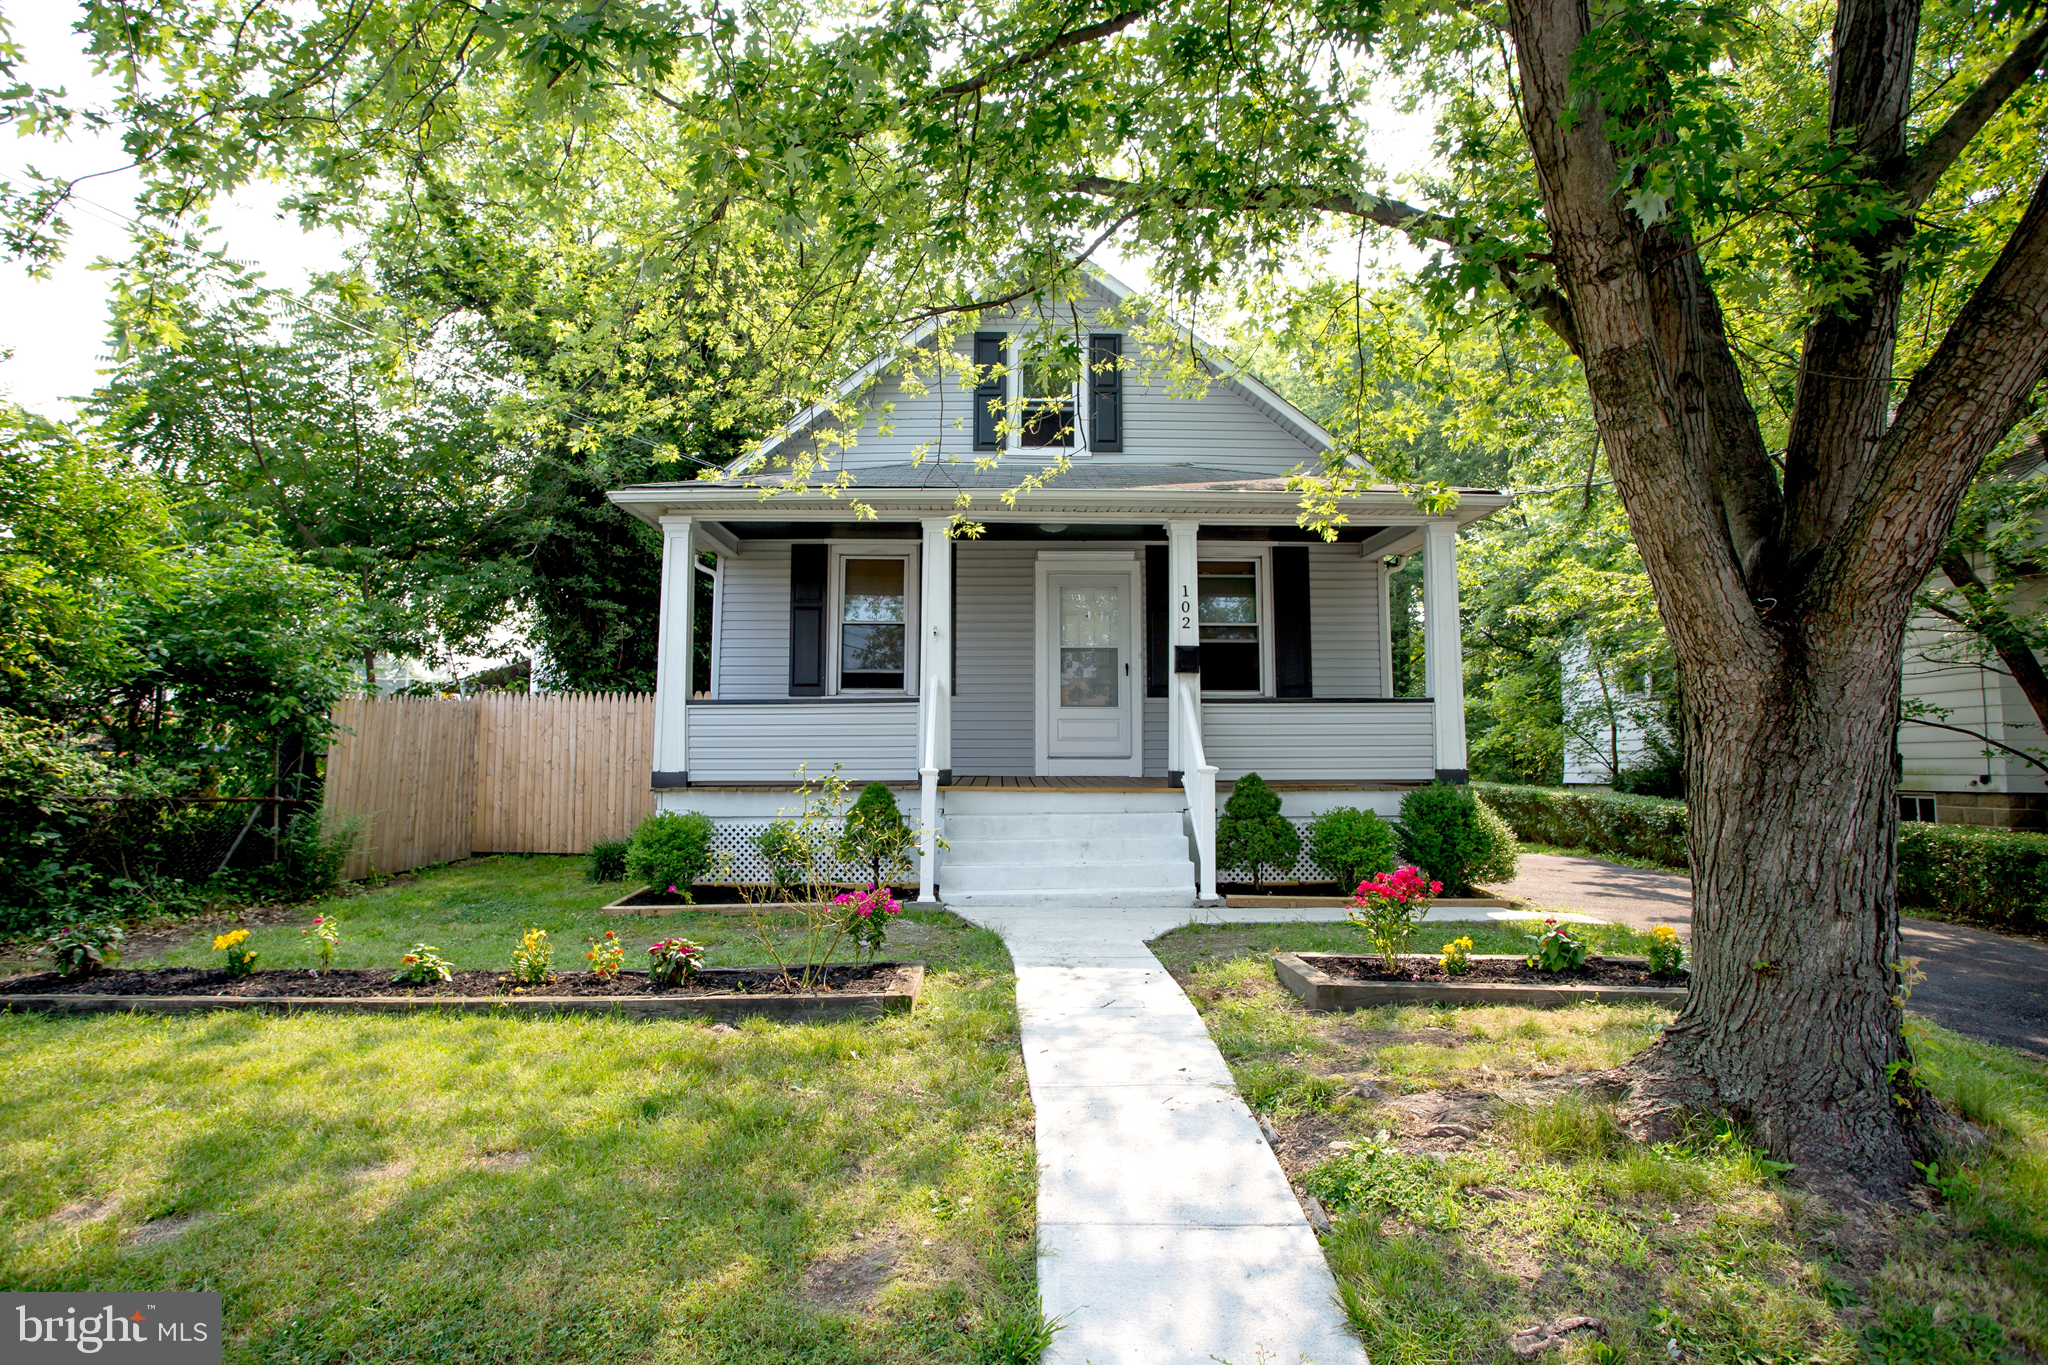 UPDATES GALORE! Here's a great opportunity to live in a generously updated, three-bedroom, 1930's bu